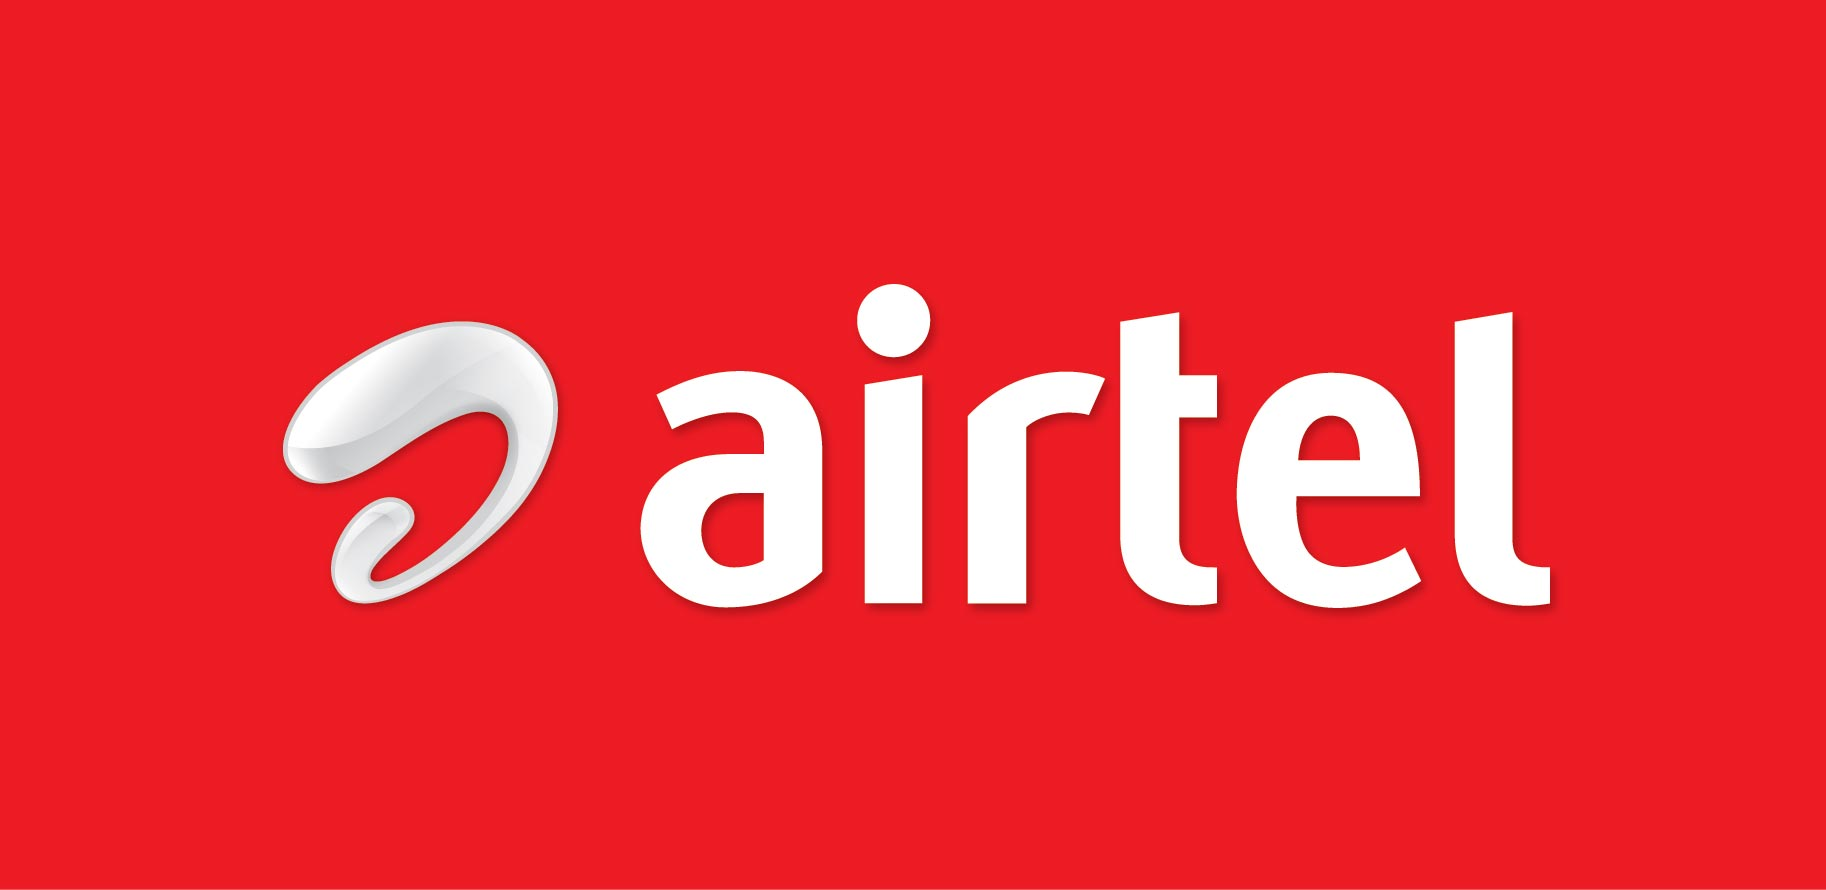 How To Hide Number On Airtel: Step By Step Guide